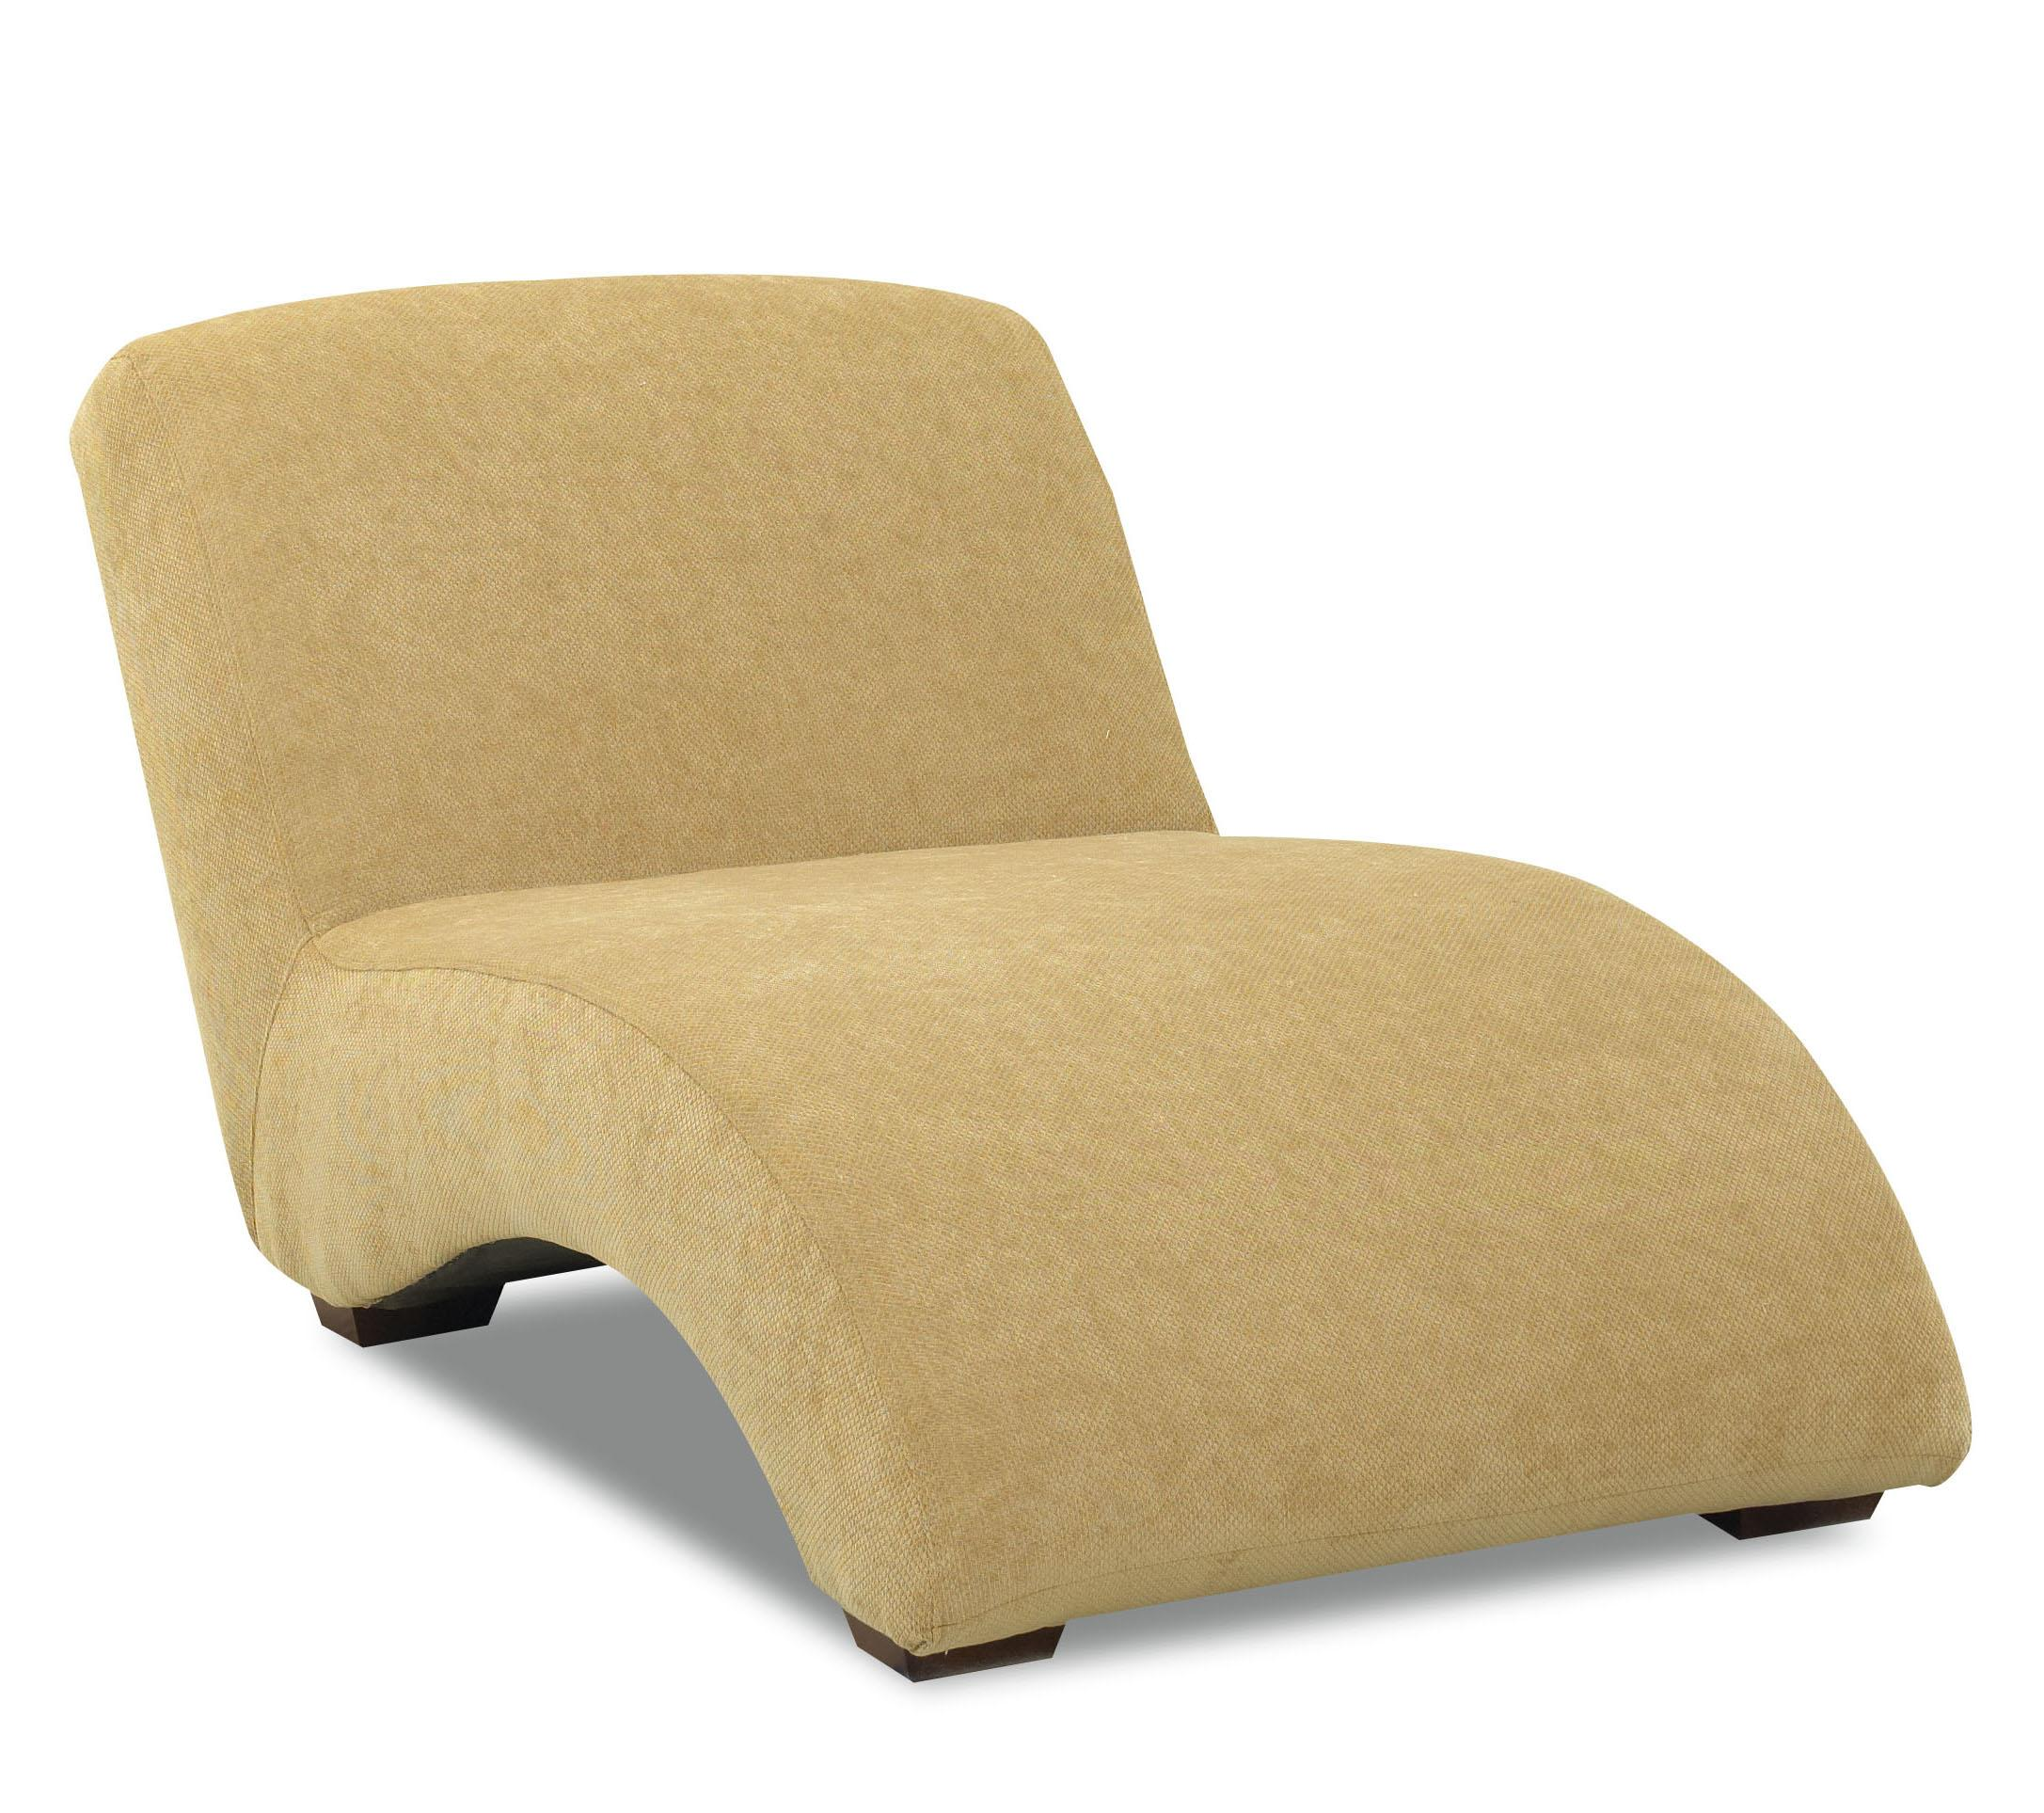 zoom home covers hero hei web estherhouseky slipcovers chaise mesmerizing lounge endearing furn wid